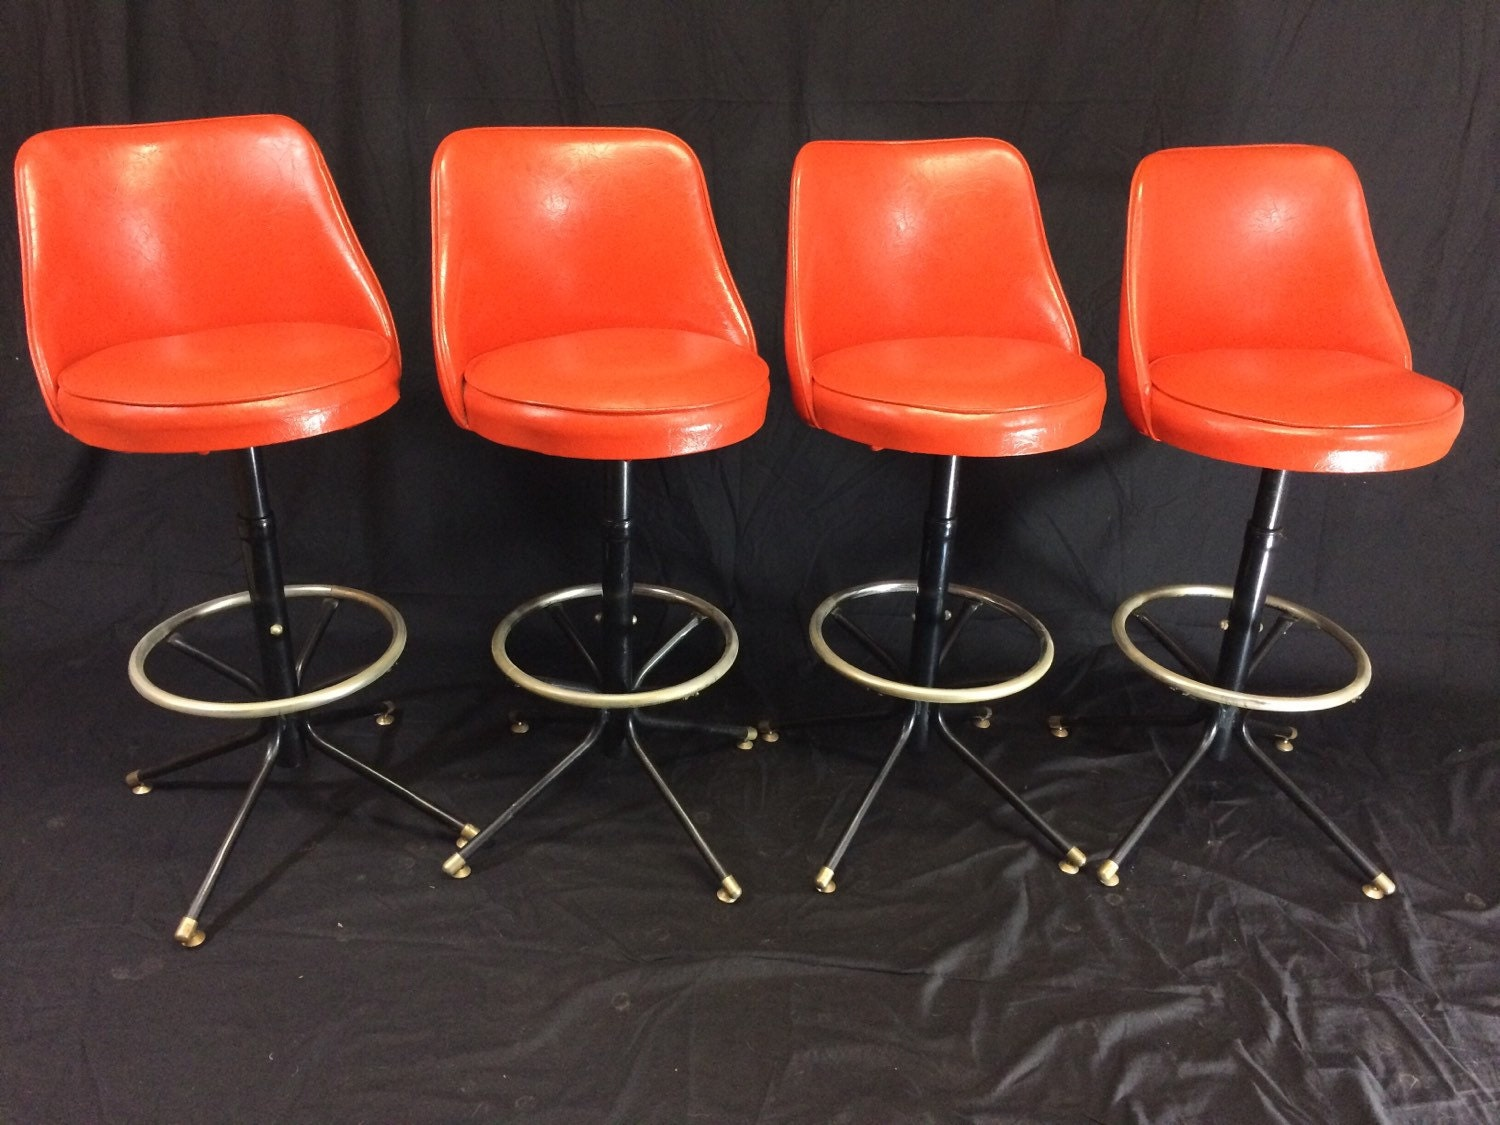 Admiral Chrome Corp Four Retro Bar Stools Atomic Orange Red